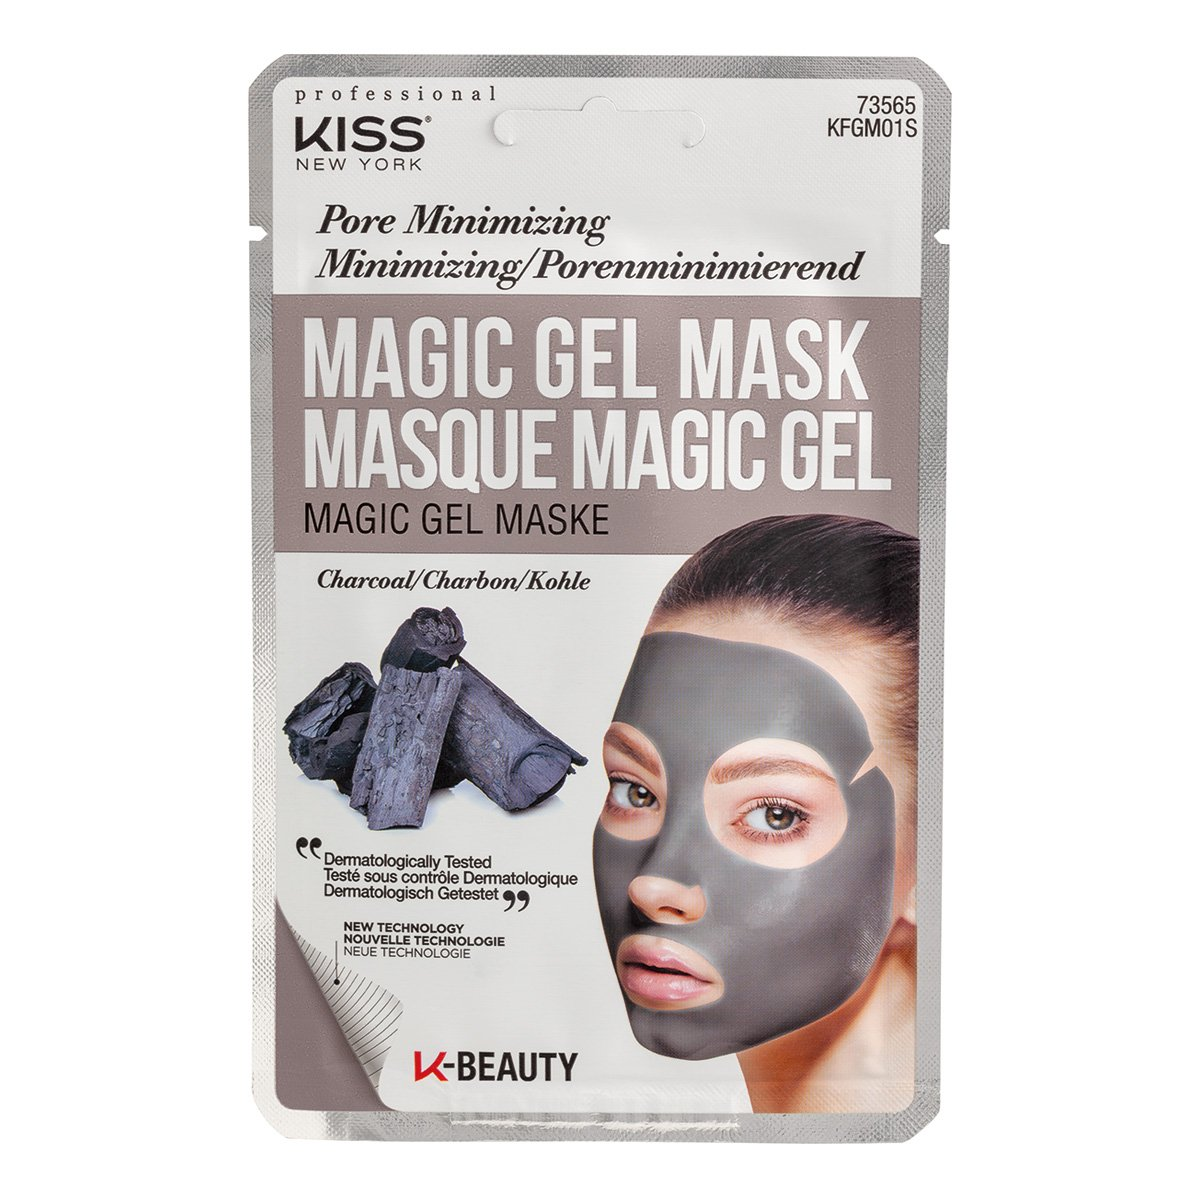 Máscara Facial Kiss New York - Magic Gel Mask Carvão - 1 Unid.